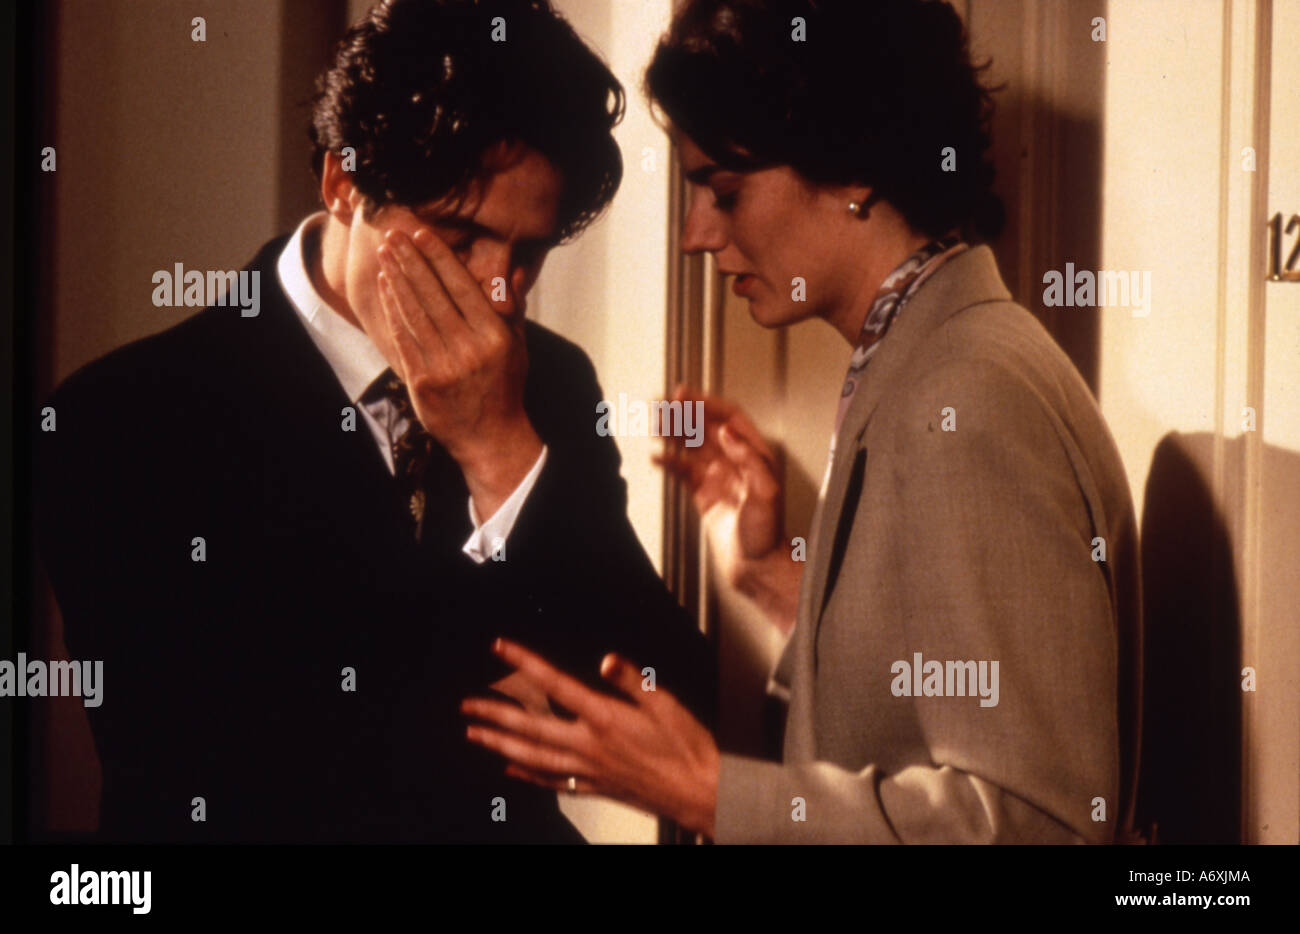 Four Weddings And A Funeral Gallery: FOUR WEDDINGS AND A FUNERAL Hugh Grant And Anna Chancellor